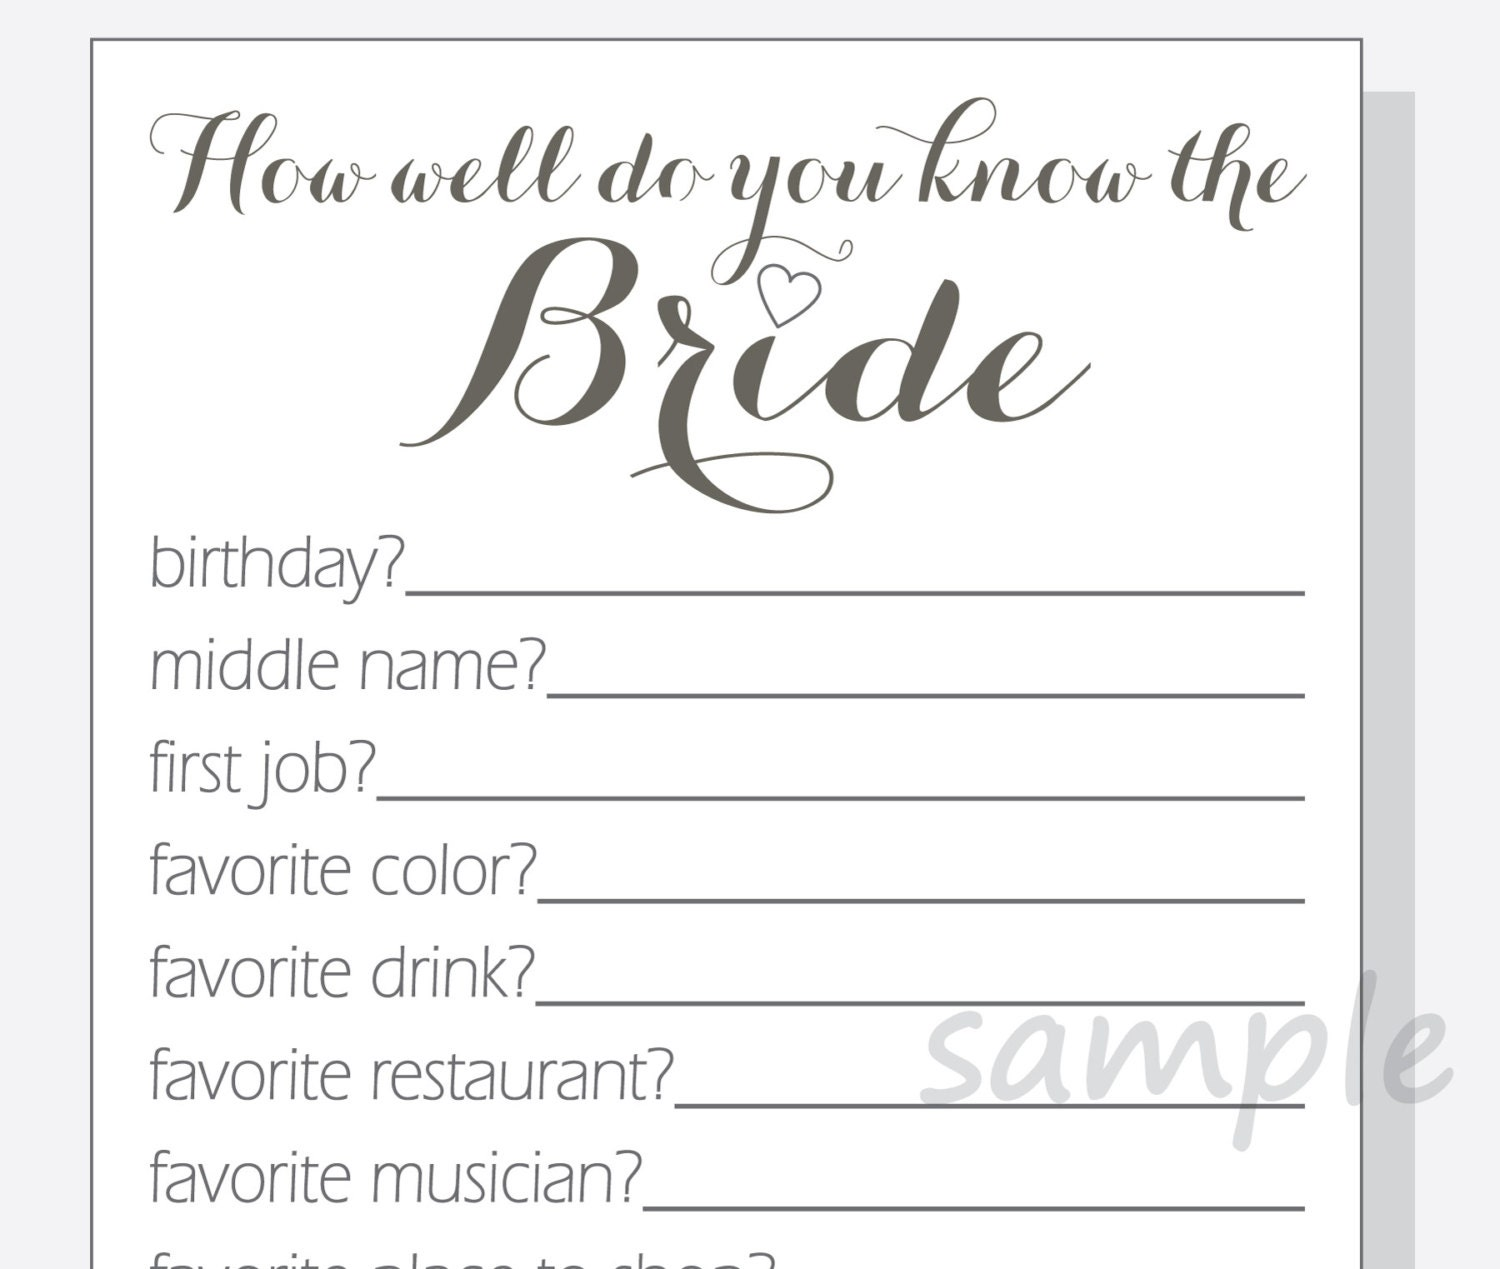 Nerdy image with how well do you know the bride free printable